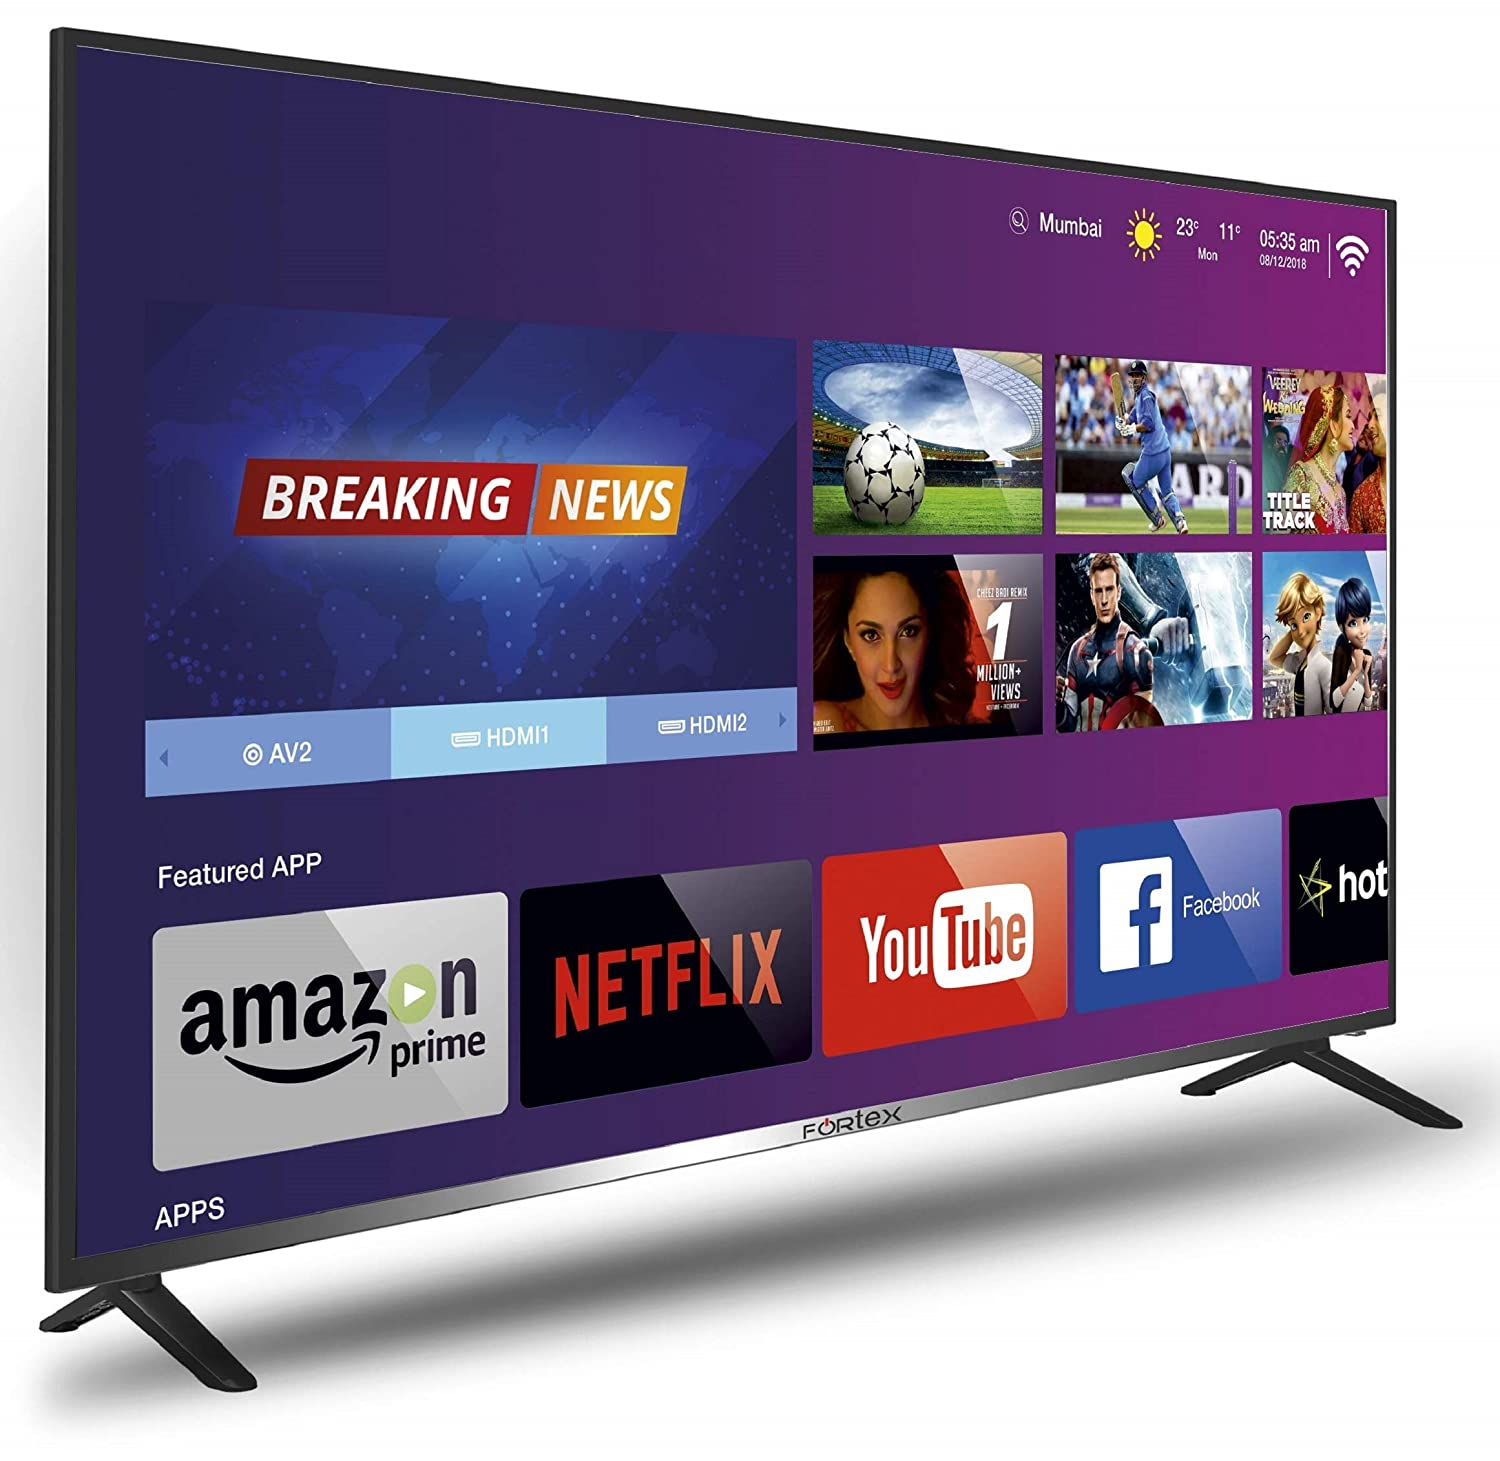 4K Ultra HD Fortex (55 inches) Smart LED TV FX55Spro01